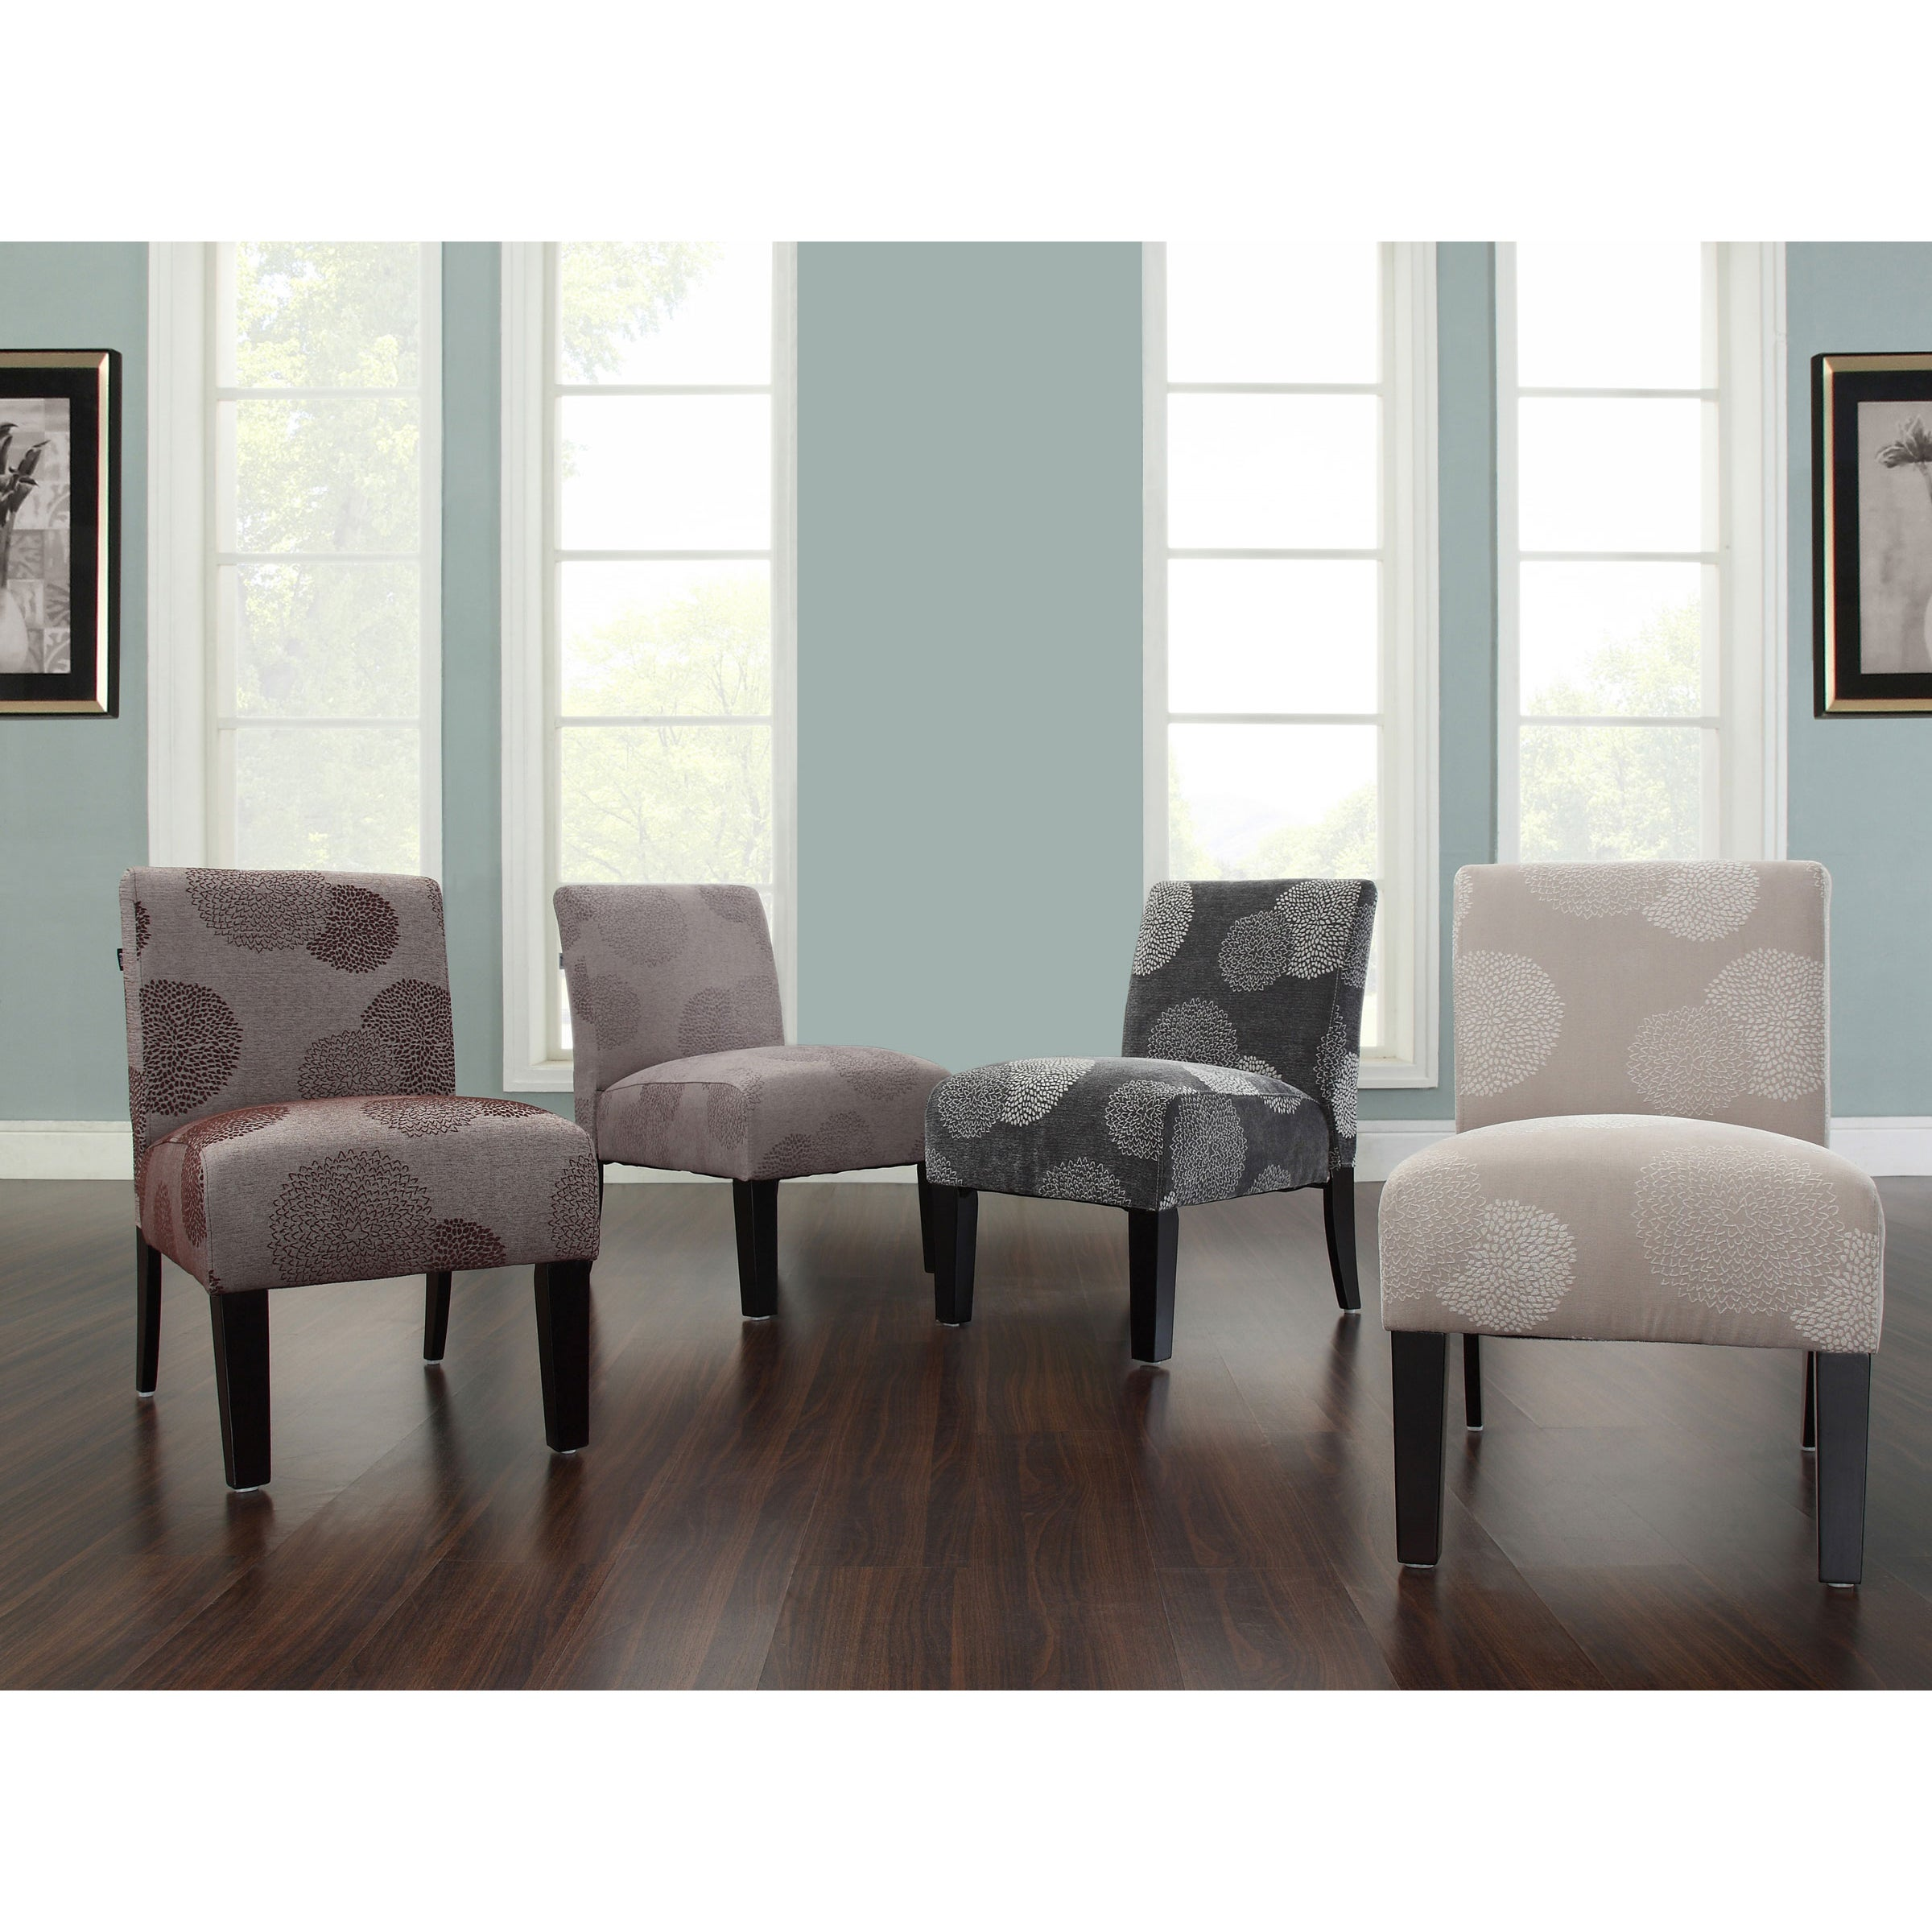 Well-known Deco Sunflower Accent Chair - Free Shipping On Orders Over $45  ZP45